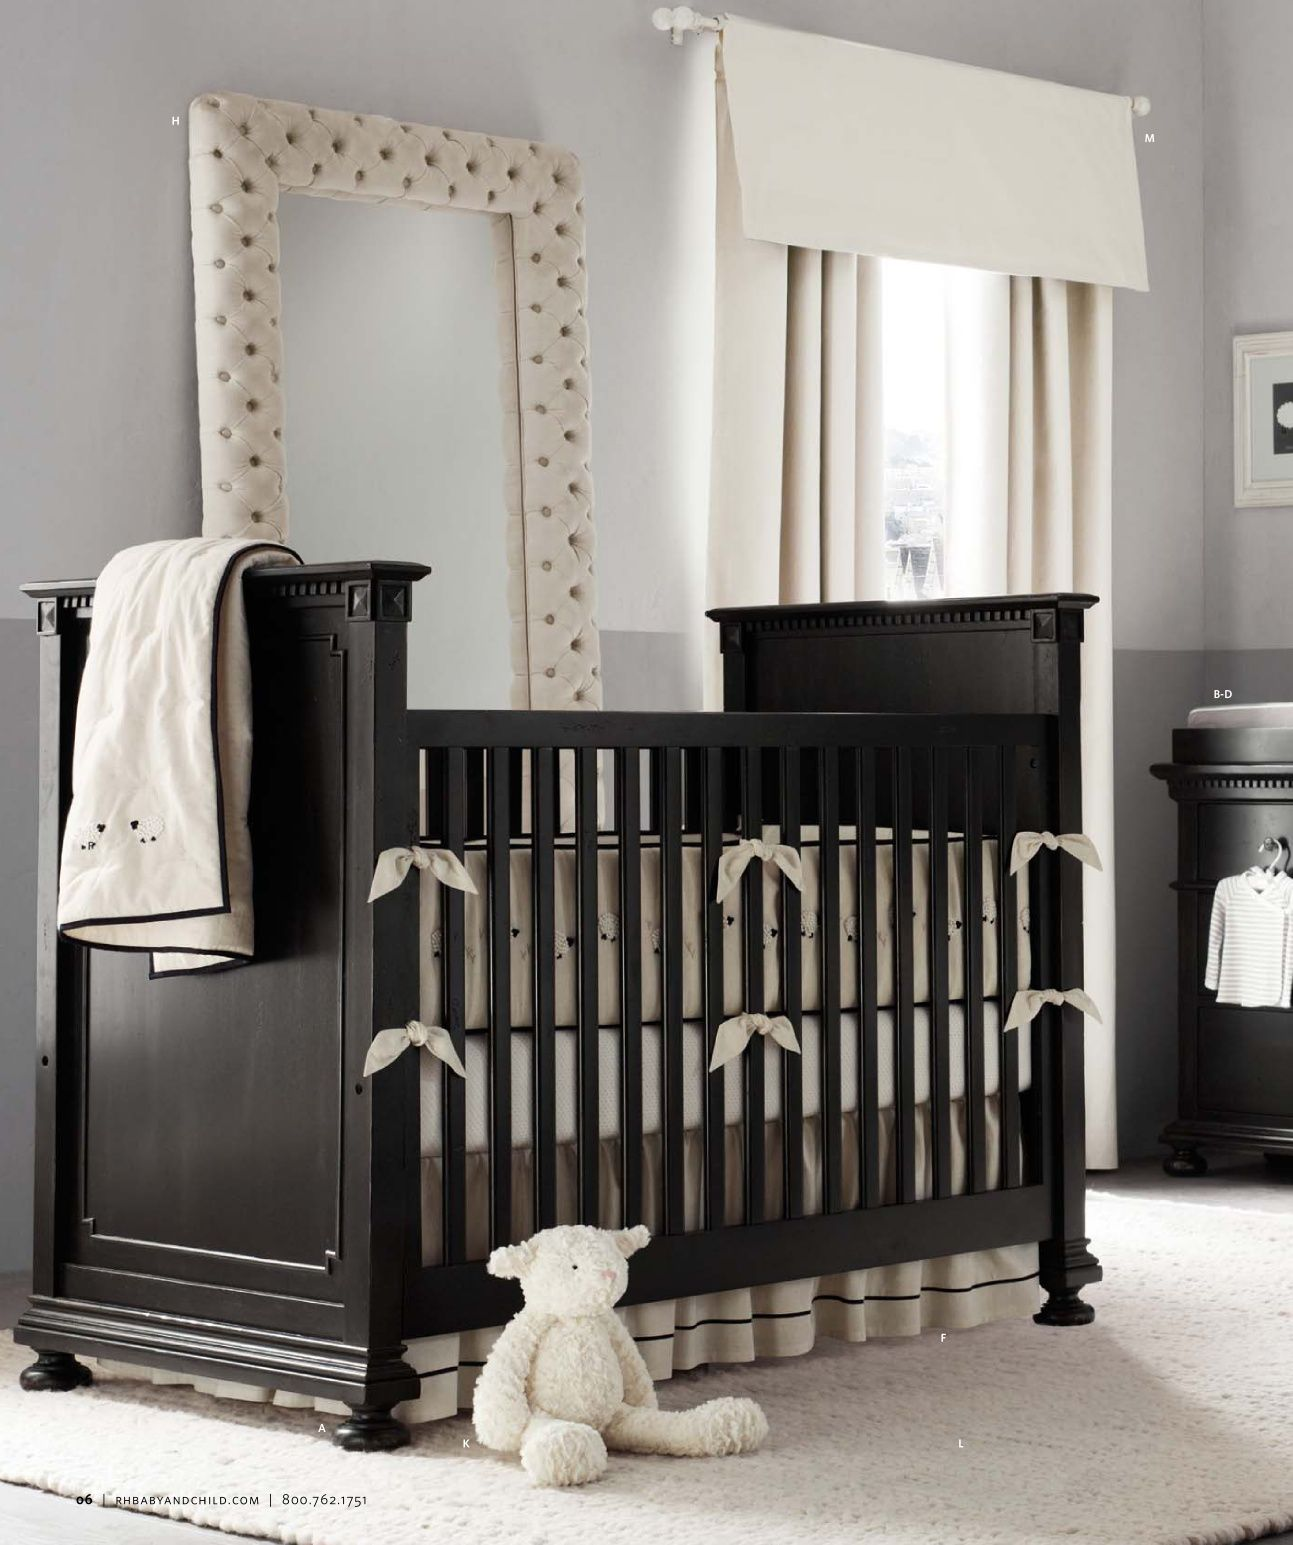 Love the neutral color with the dark wood crib.  Very sophisticated!